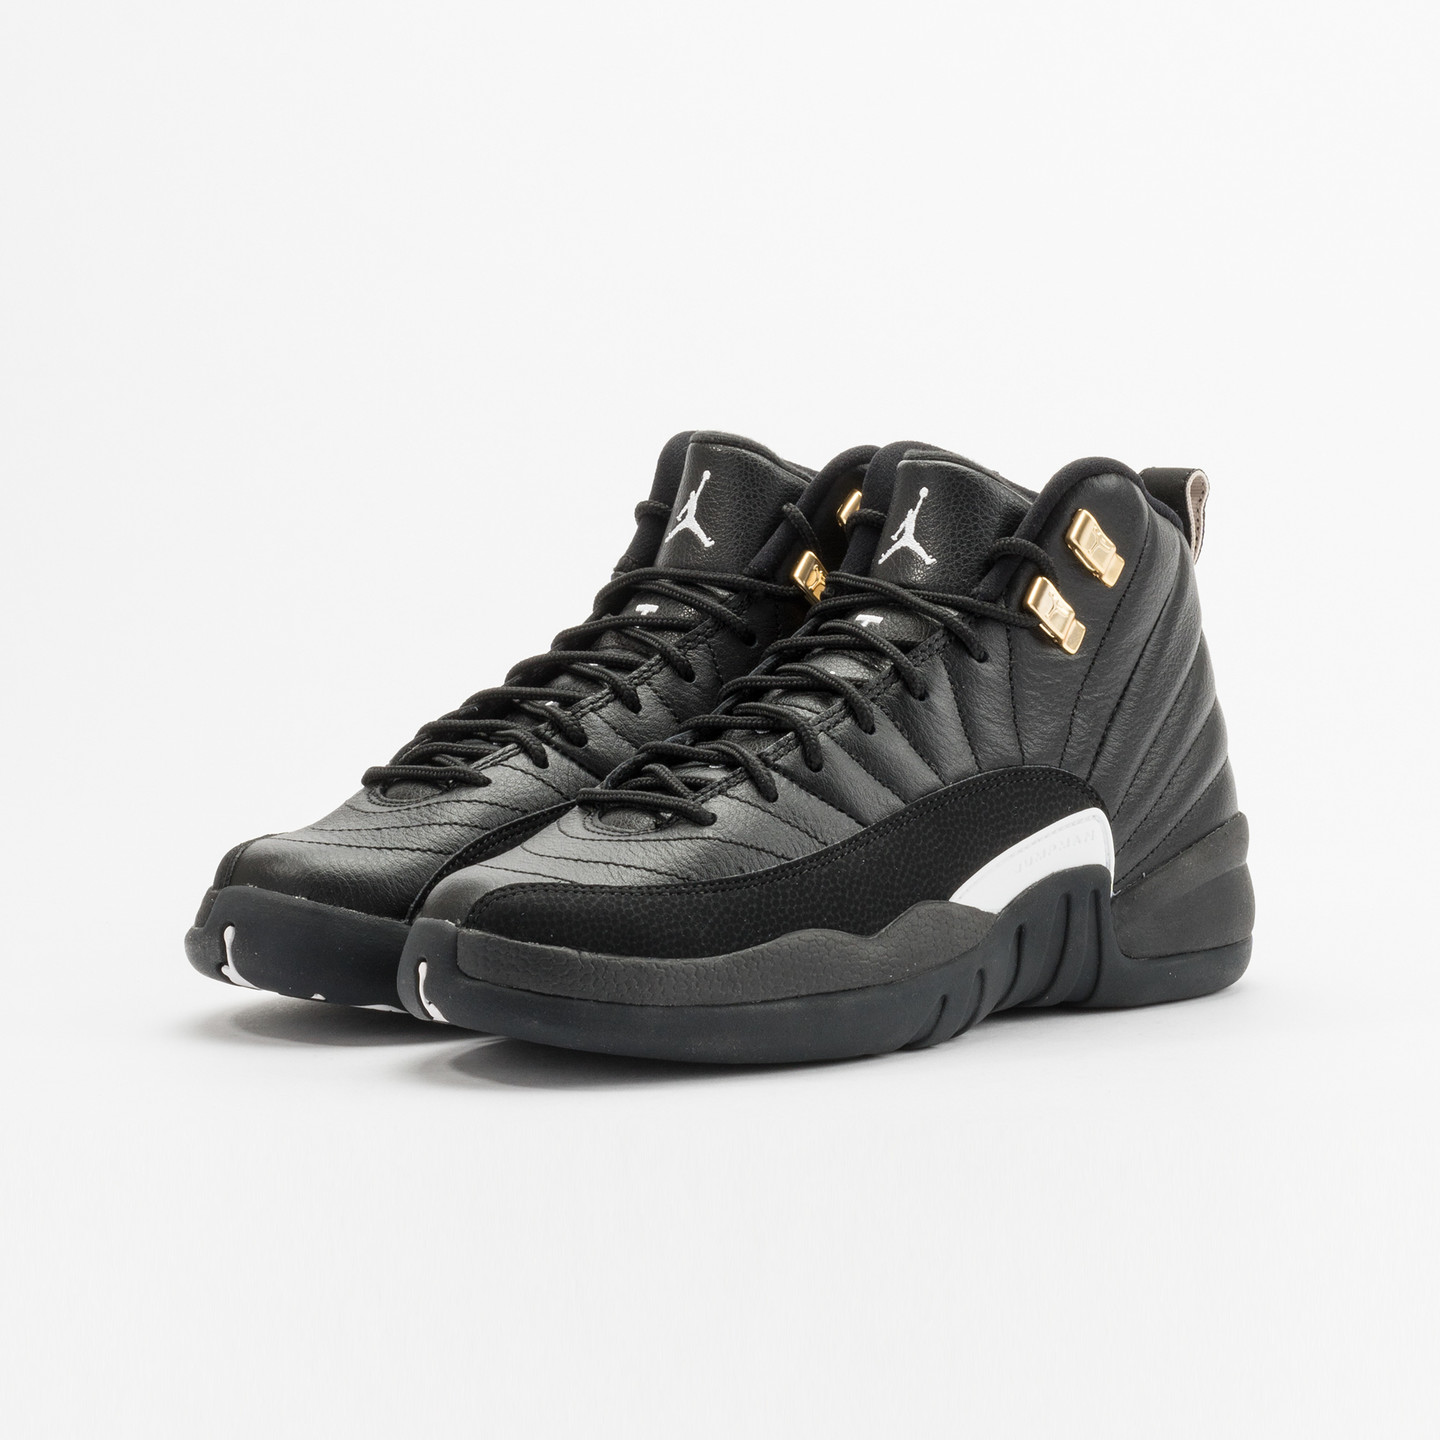 Jordan Air Jordan 12 Retro GS 'The Master' Black / White / Metallic Gold 153265-013-38